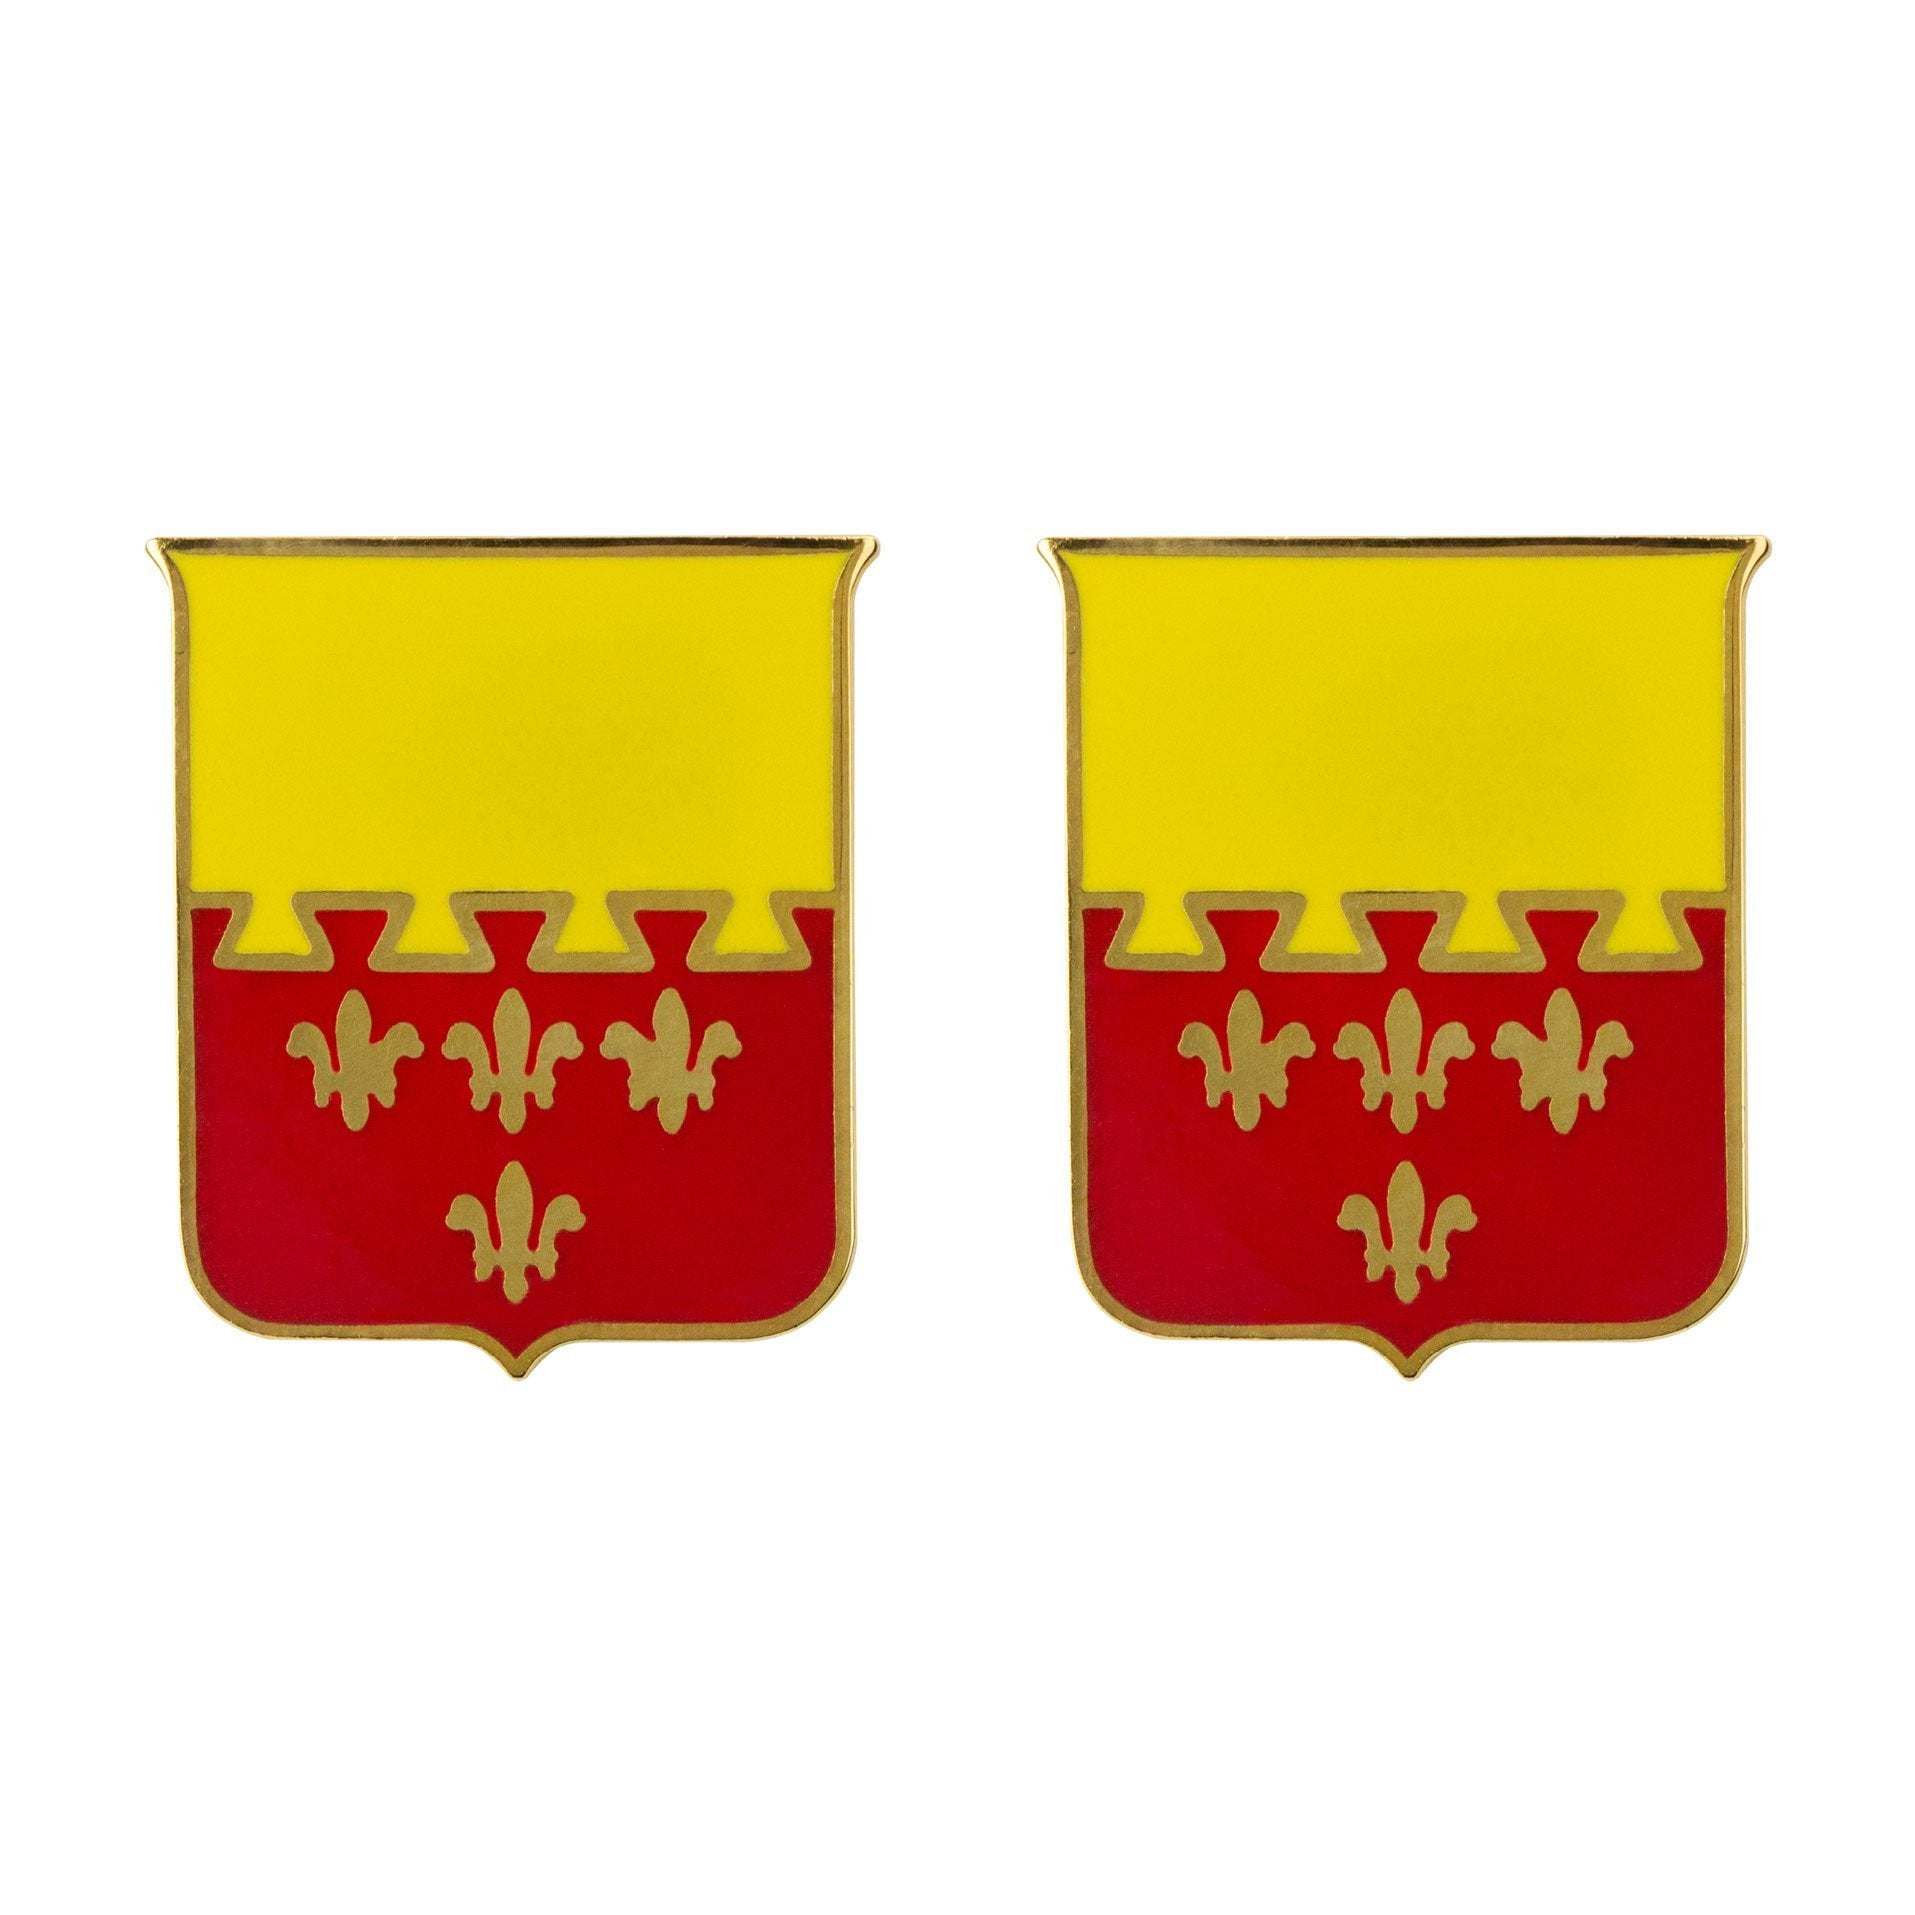 Army Unit Crests - 106th Cavalry Regiment Unit Crest (No Motto) -   jetcube